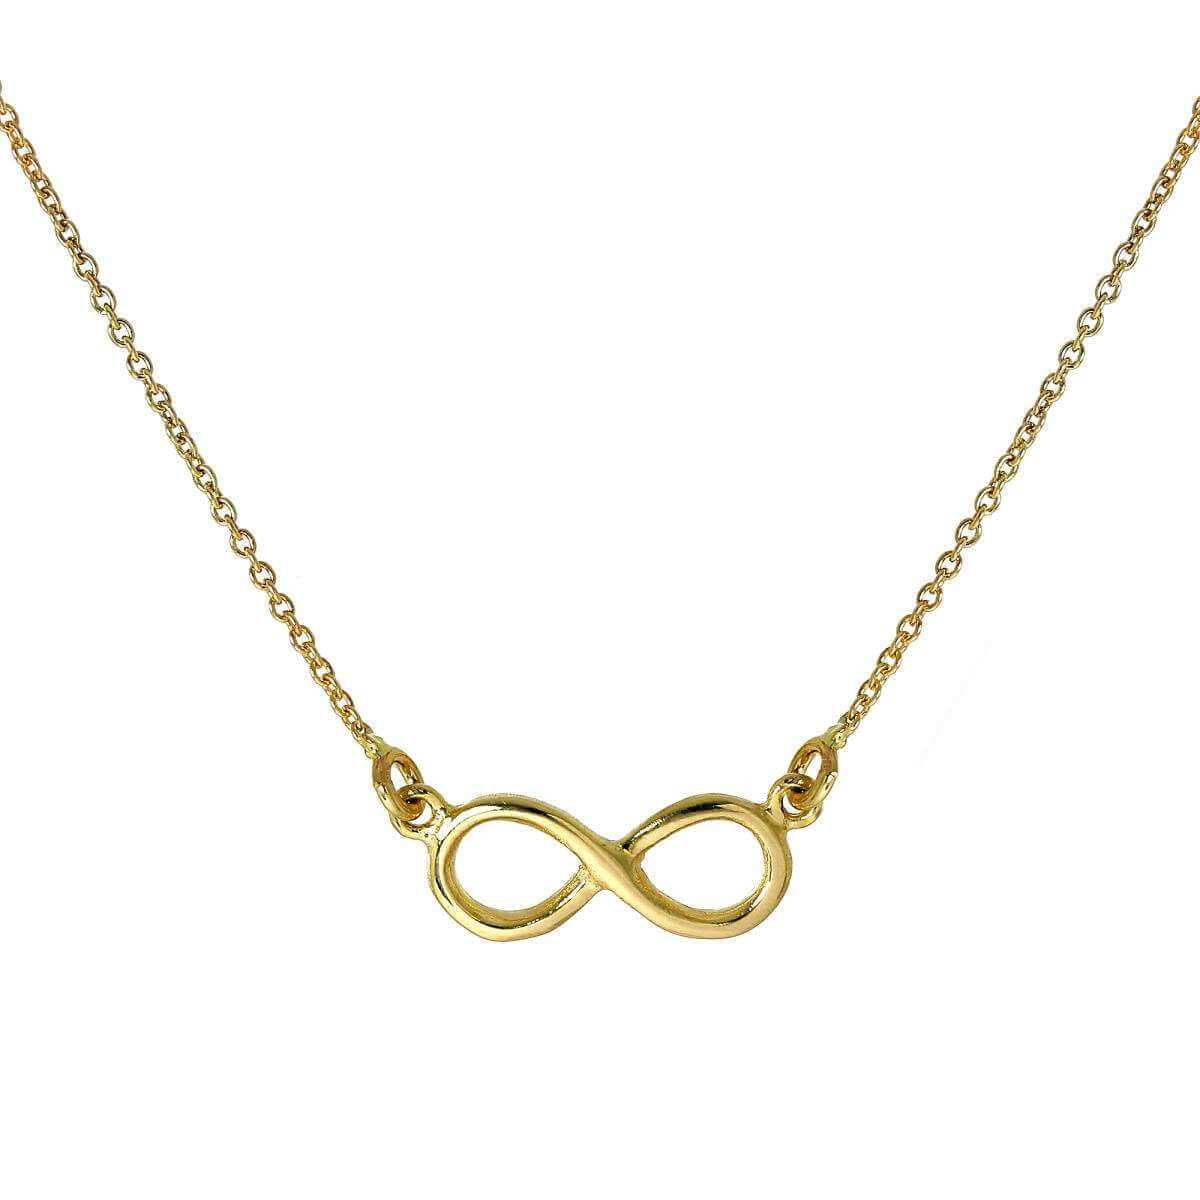 9ct Gold Infinity Pendant 16 Inch Necklace